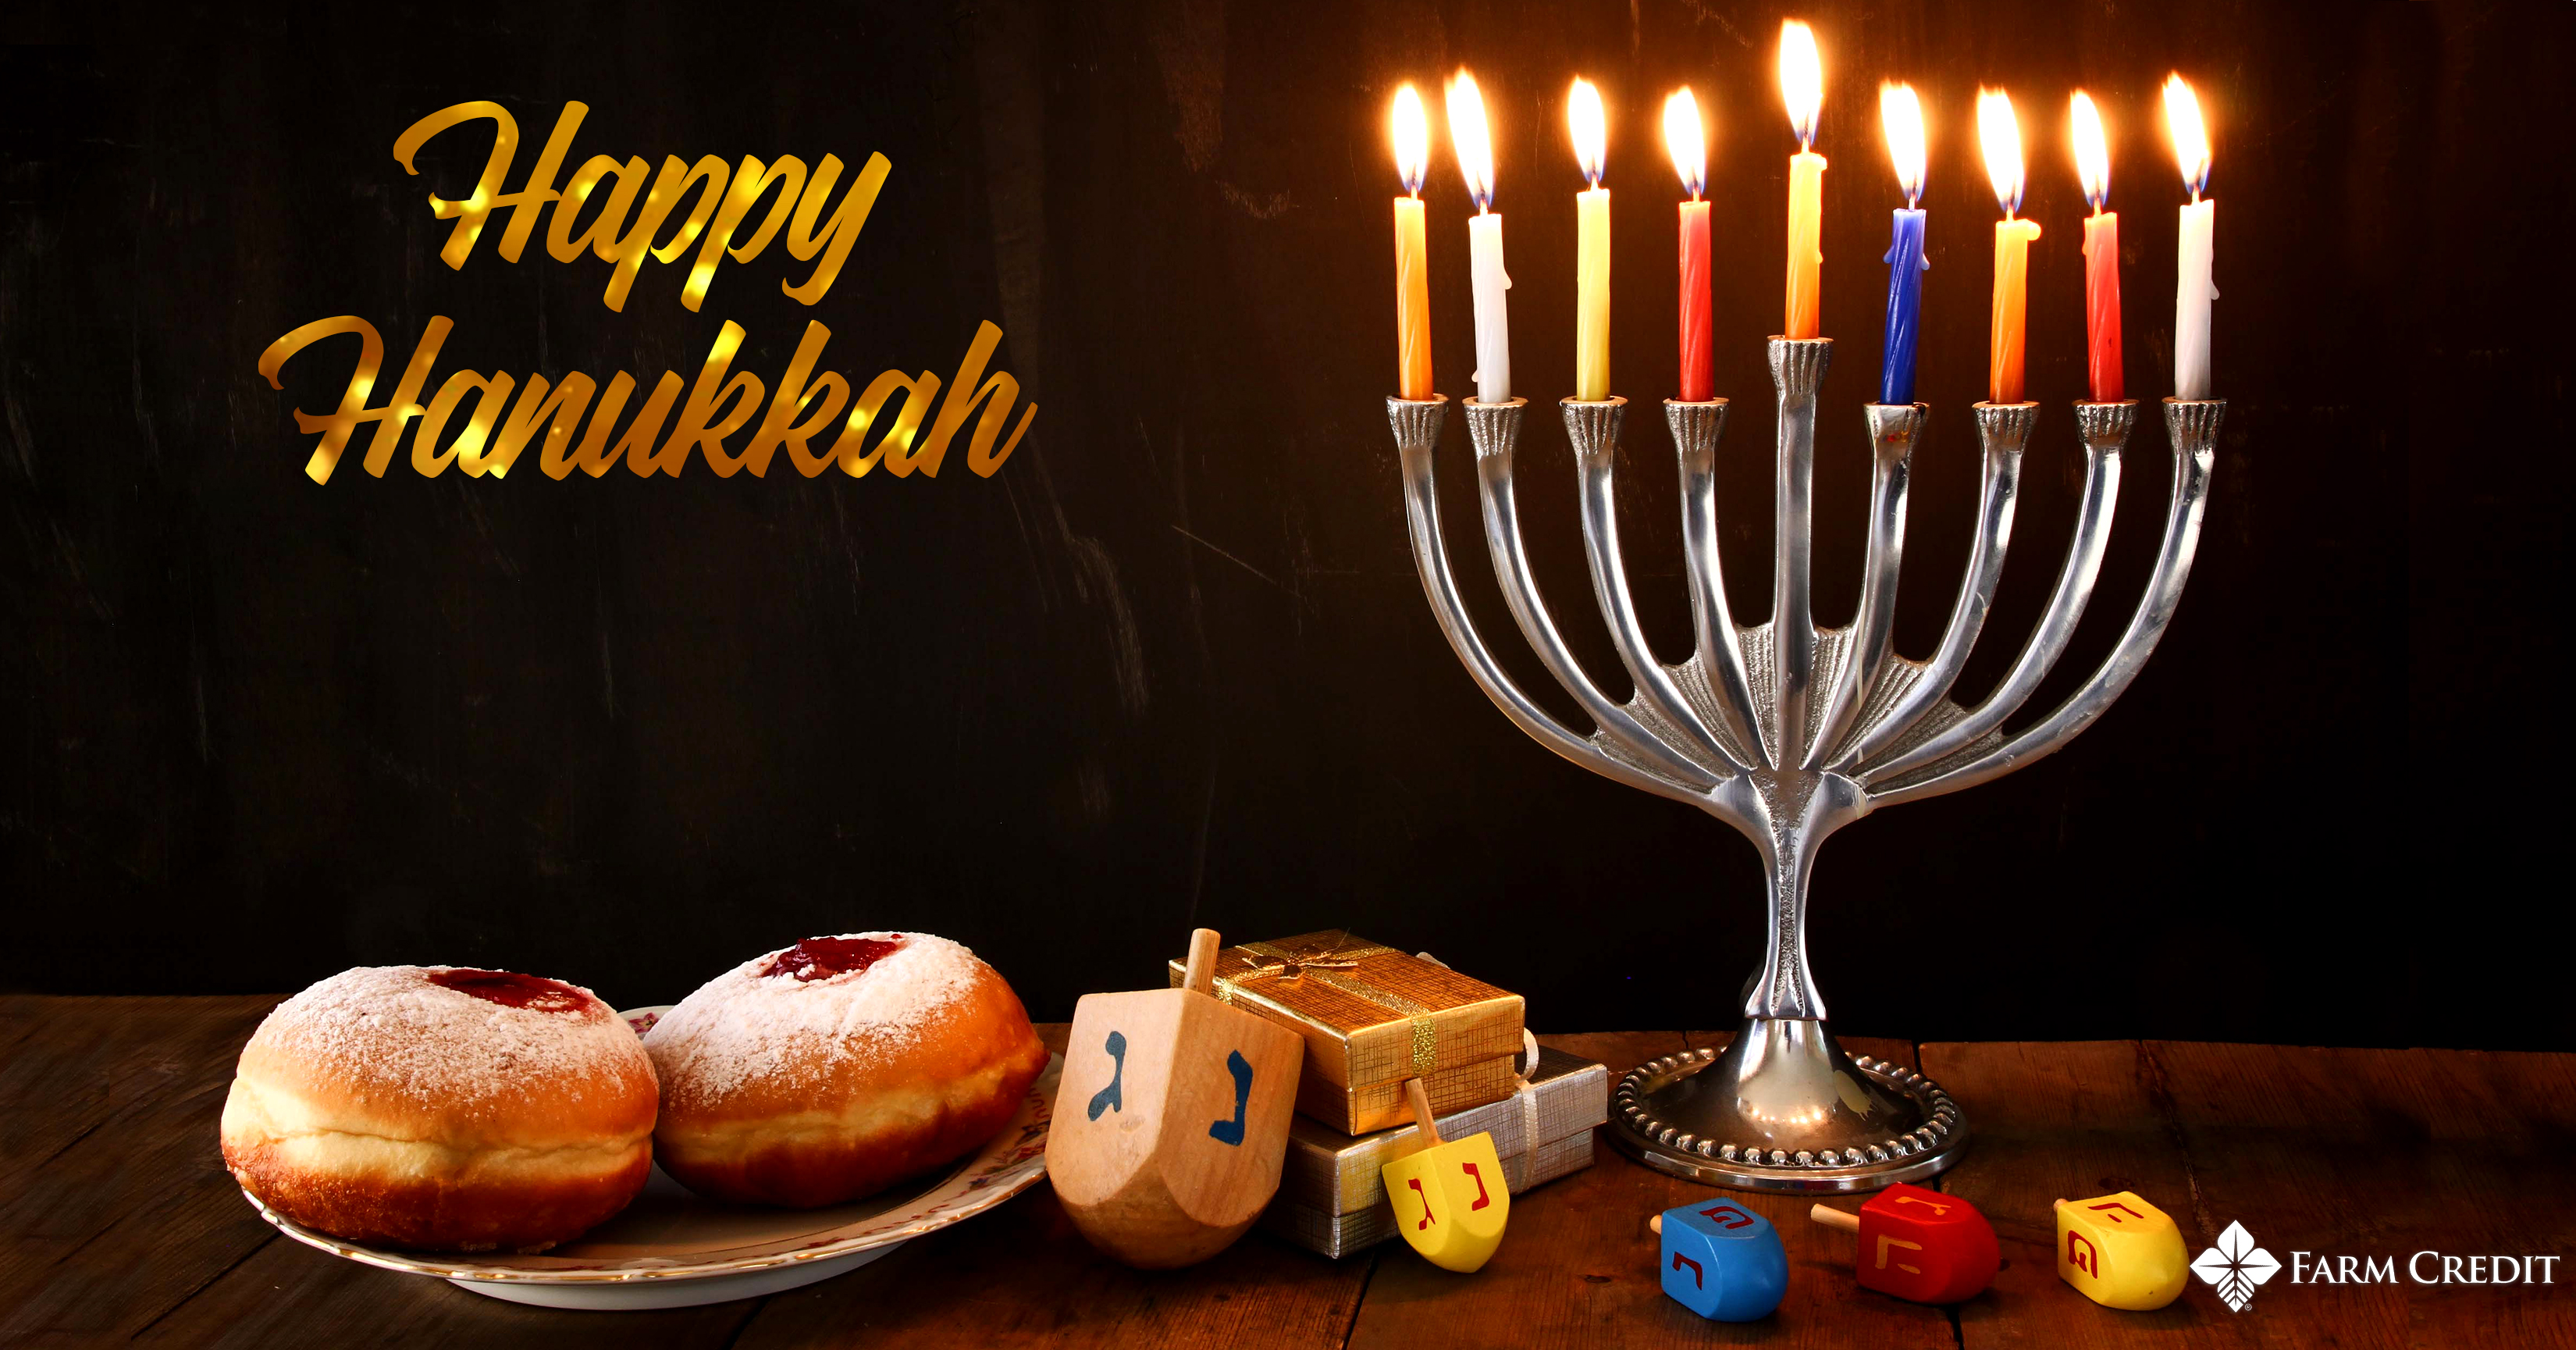 hanukka text on screen graphic with menorah lit and dreidals